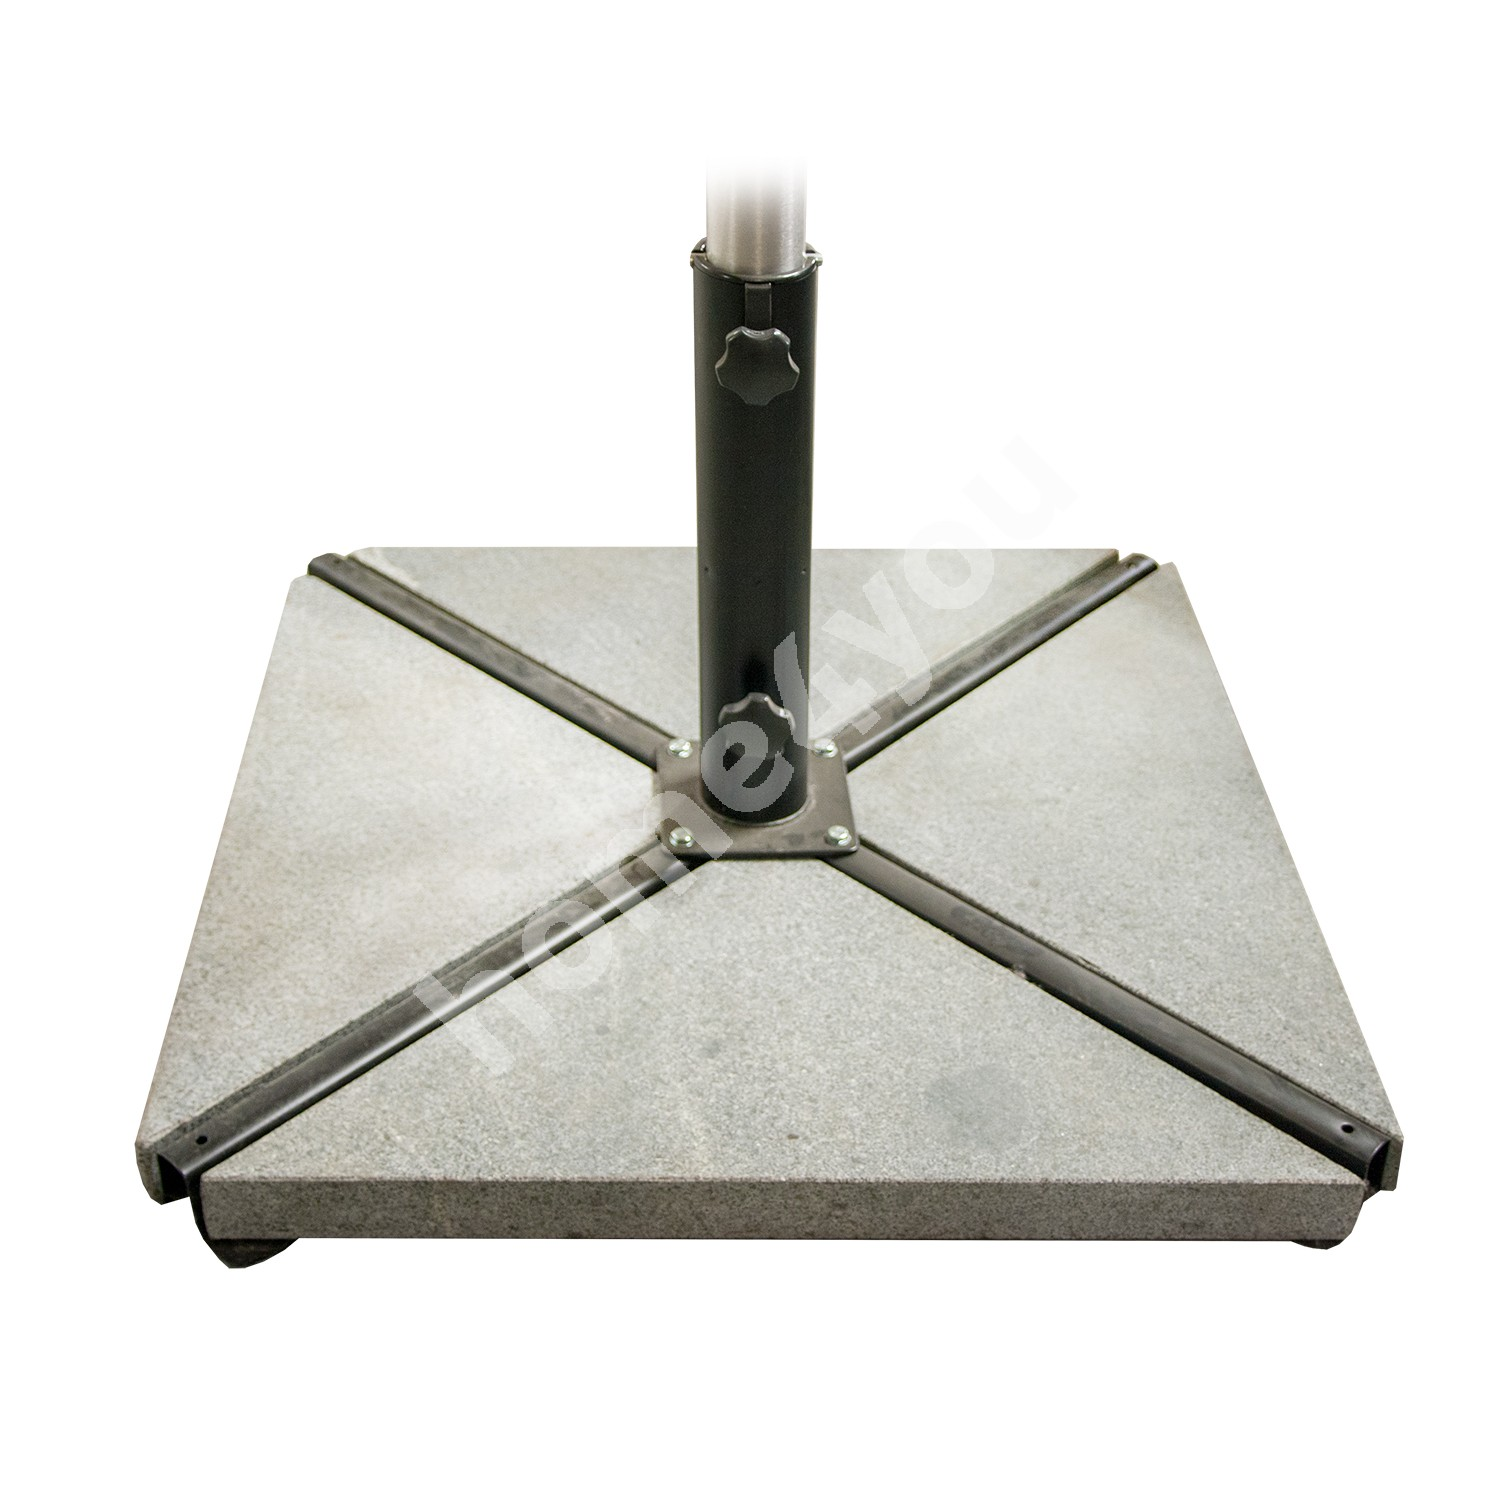 Stones for the parasol base 4pcs, total weight 58kg, material: granite